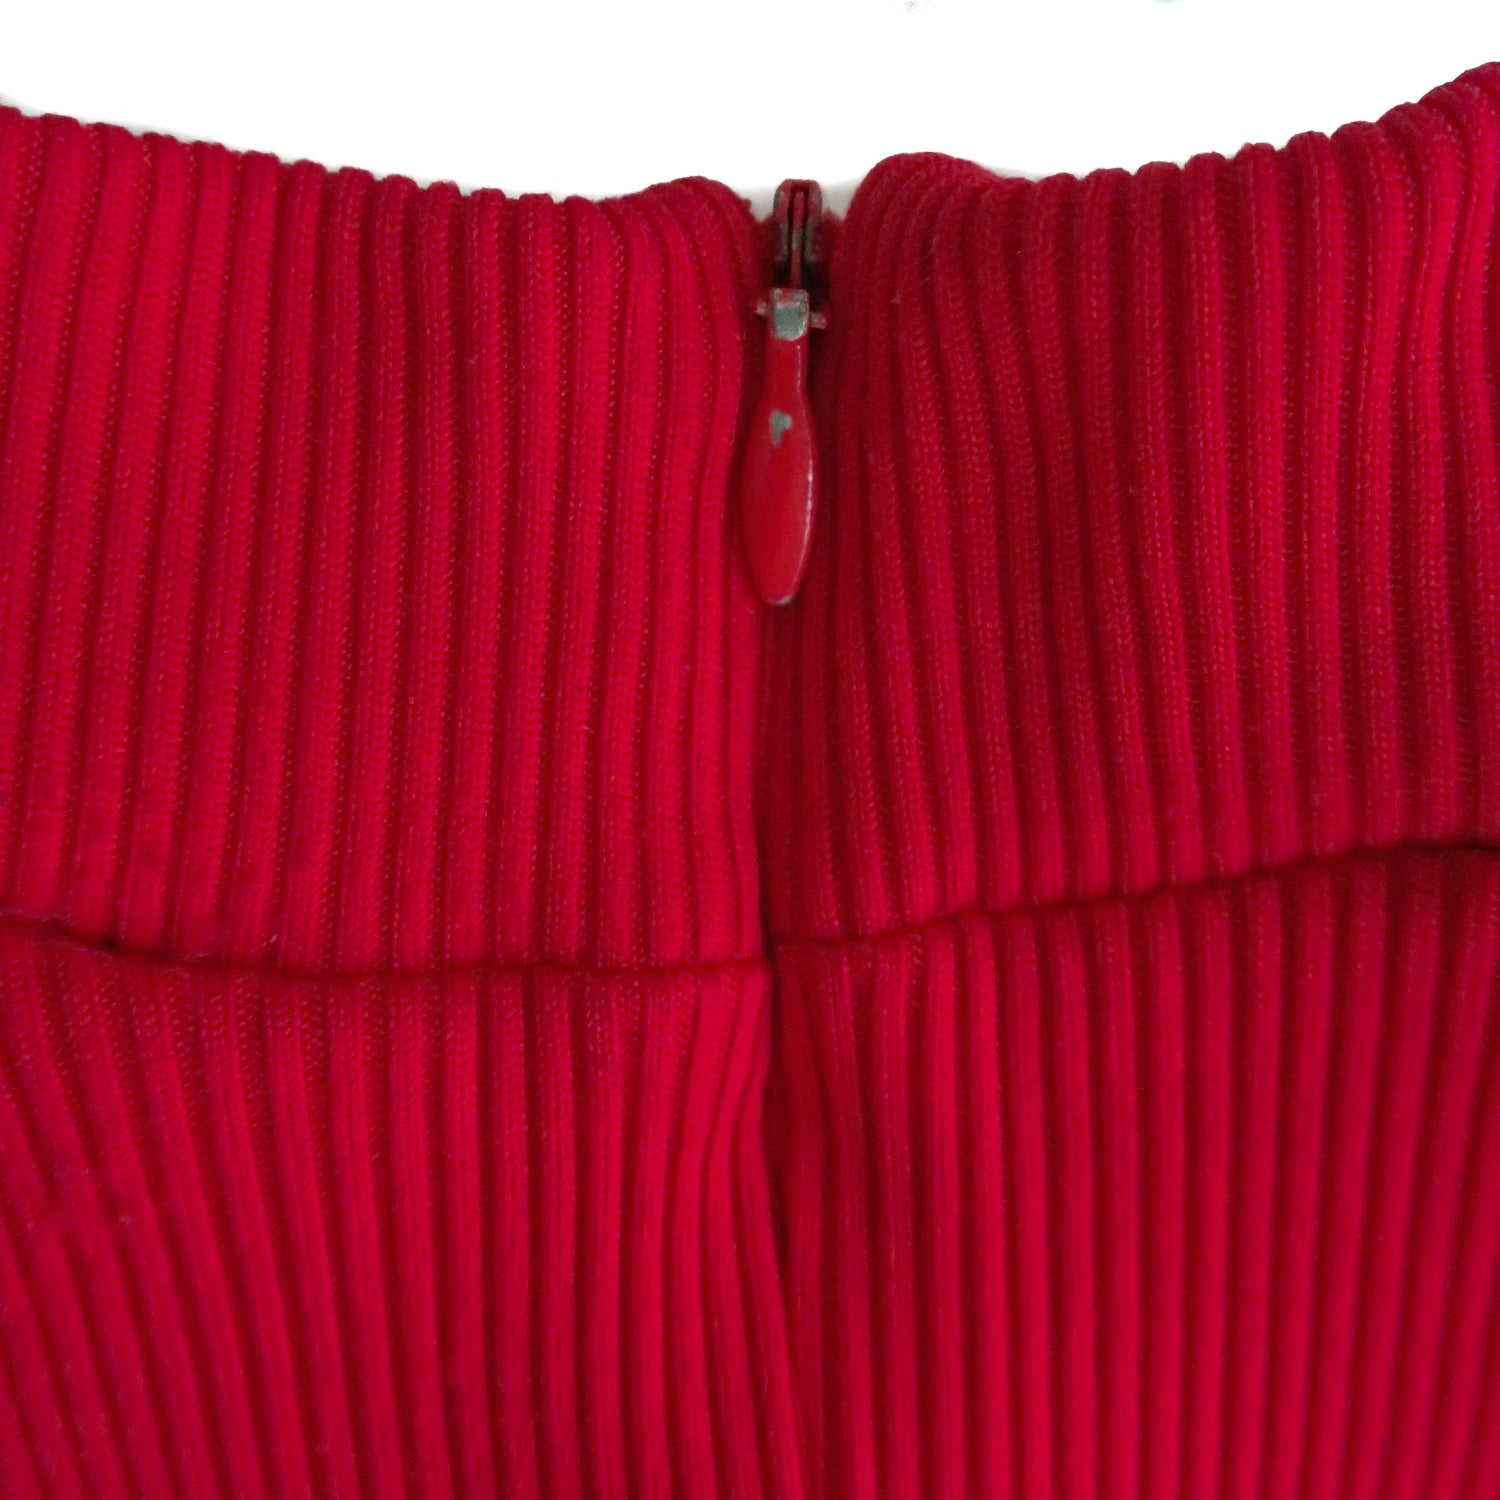 Second Room Vintage Clothing. Vintage 90s short sleeve, red ribbed mock turtleneck top. The fabric is stretchy and slightly shiny, and there is a zipper at the back of the neck. Free Shipping on all orders within North America.